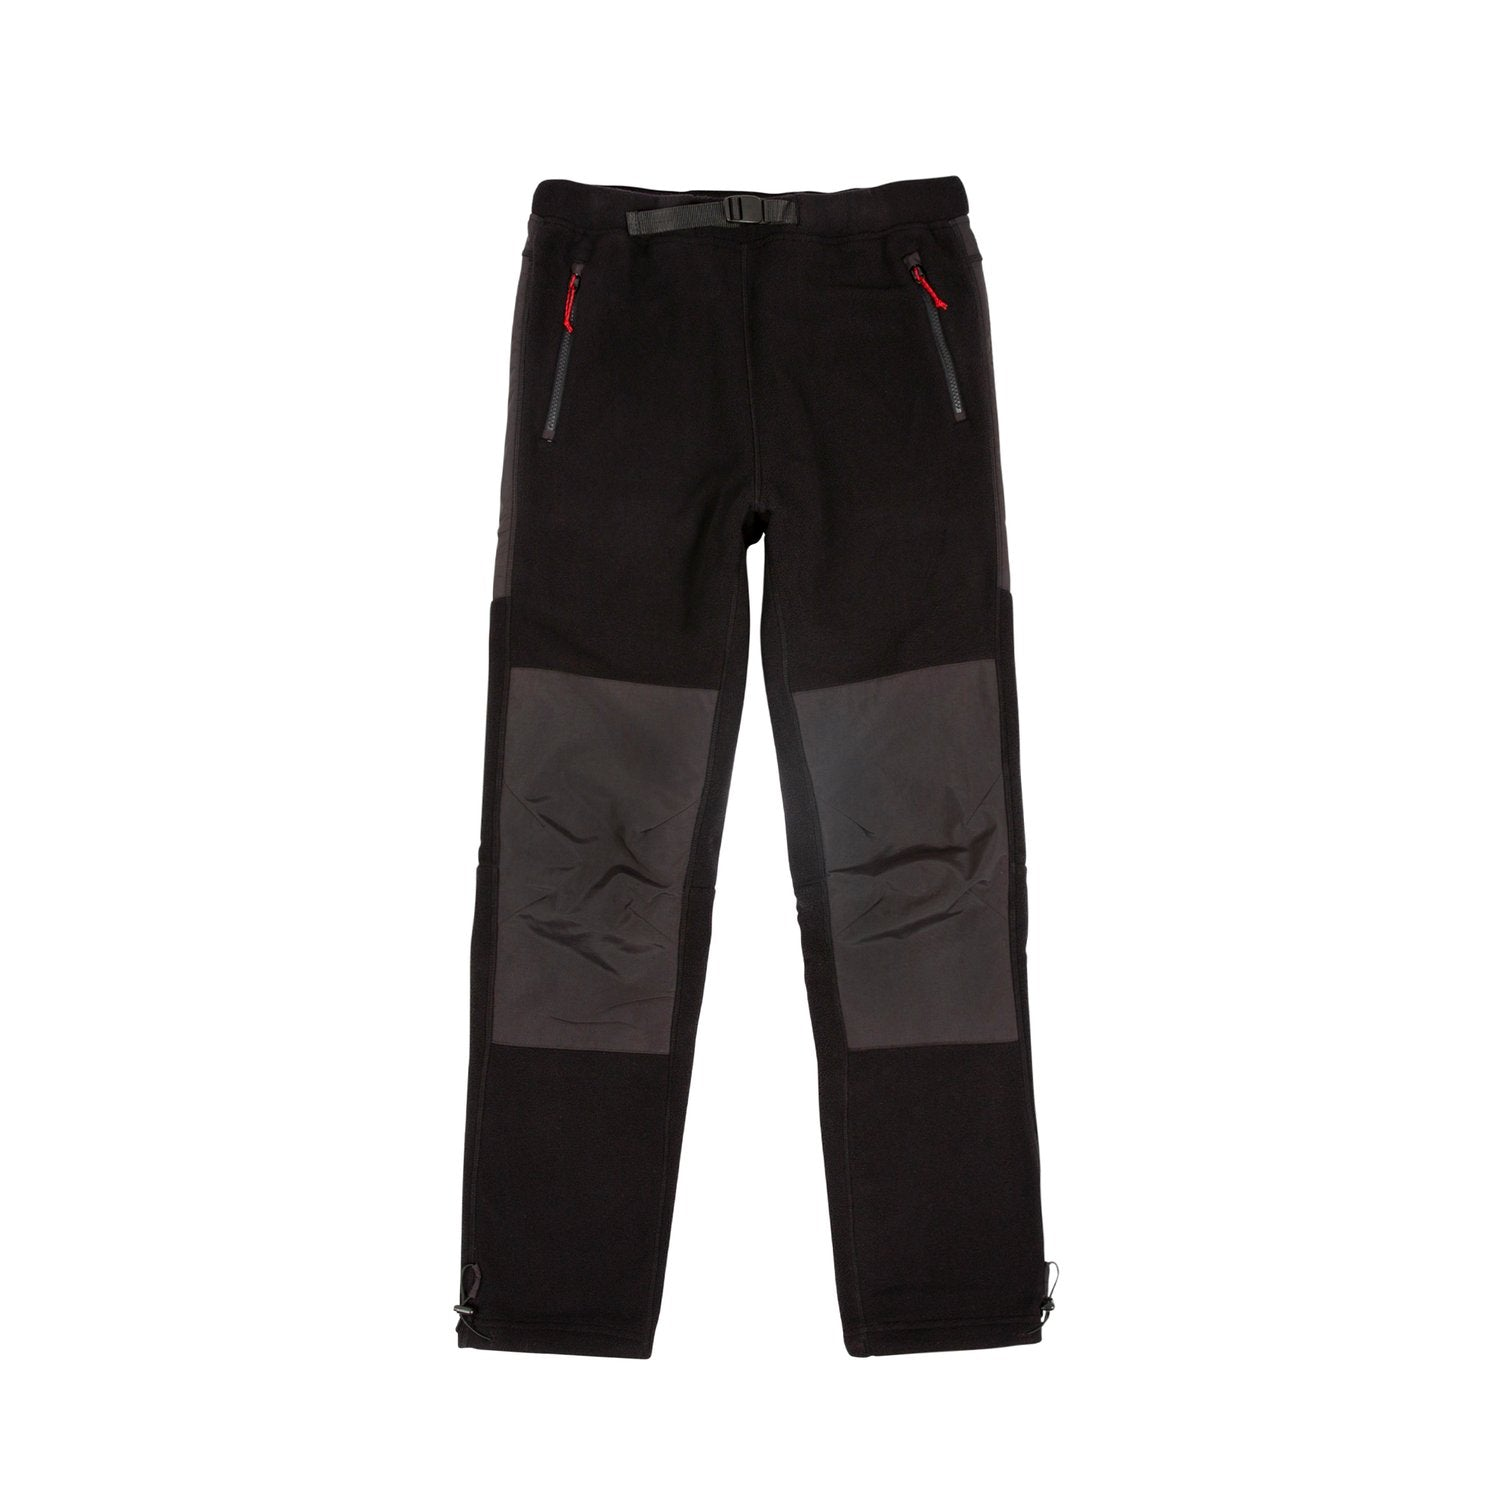 Women's Fleece Pants - Black - The Lake and Company